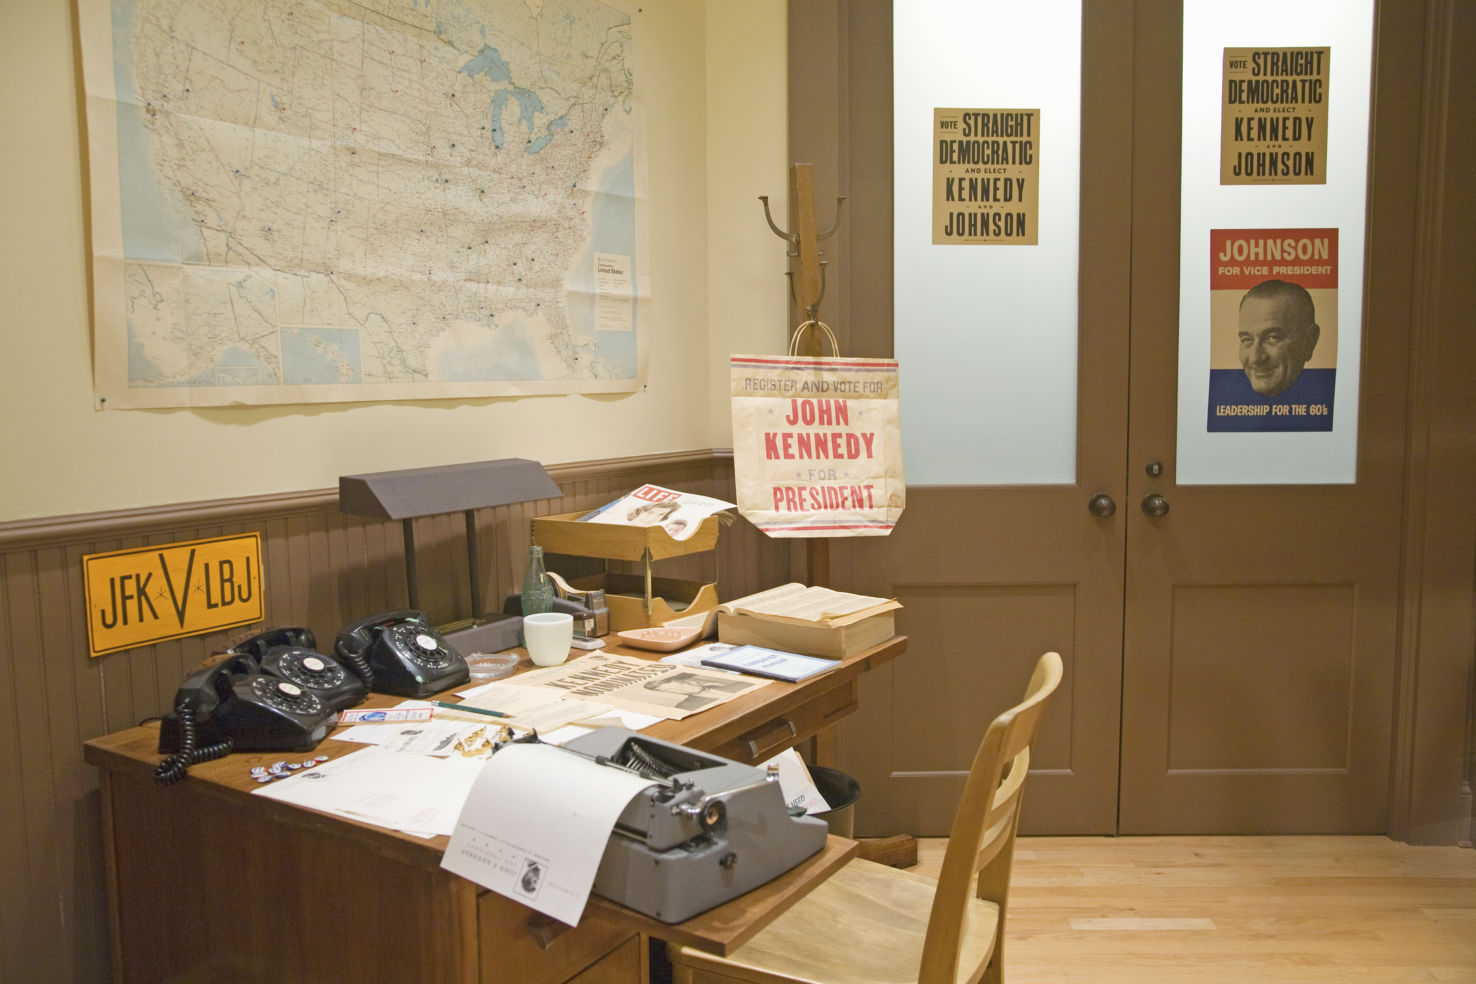 Campaign office interior setting in John F. Kennedy Presidential Library and Museum, Boston, MA.